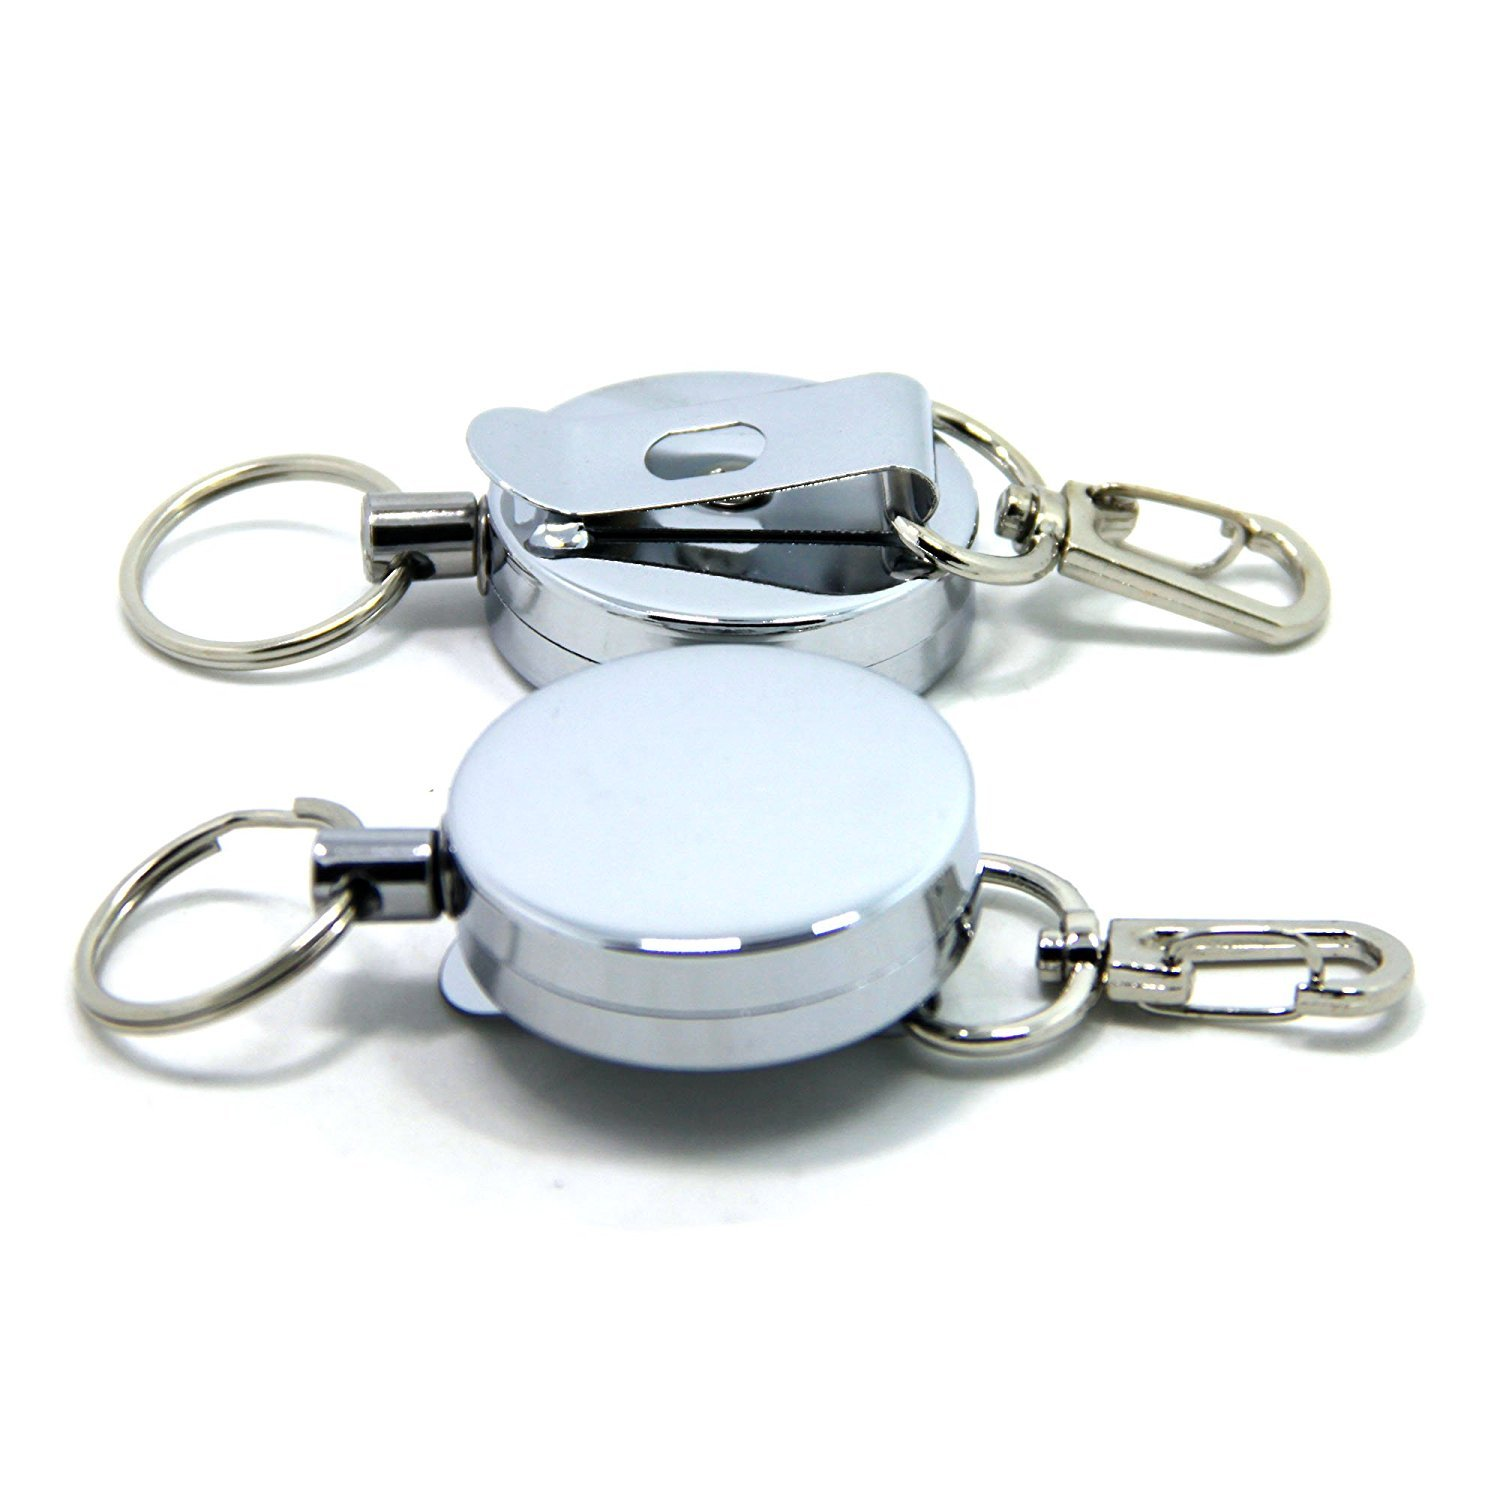 Fishing Zinger TOPIND Metal Retractable Key Chain Keys Reel Badge Holder with Belt Clip with Stainless Cable 2pcs Shanxi Top Industries Co. Ltd.